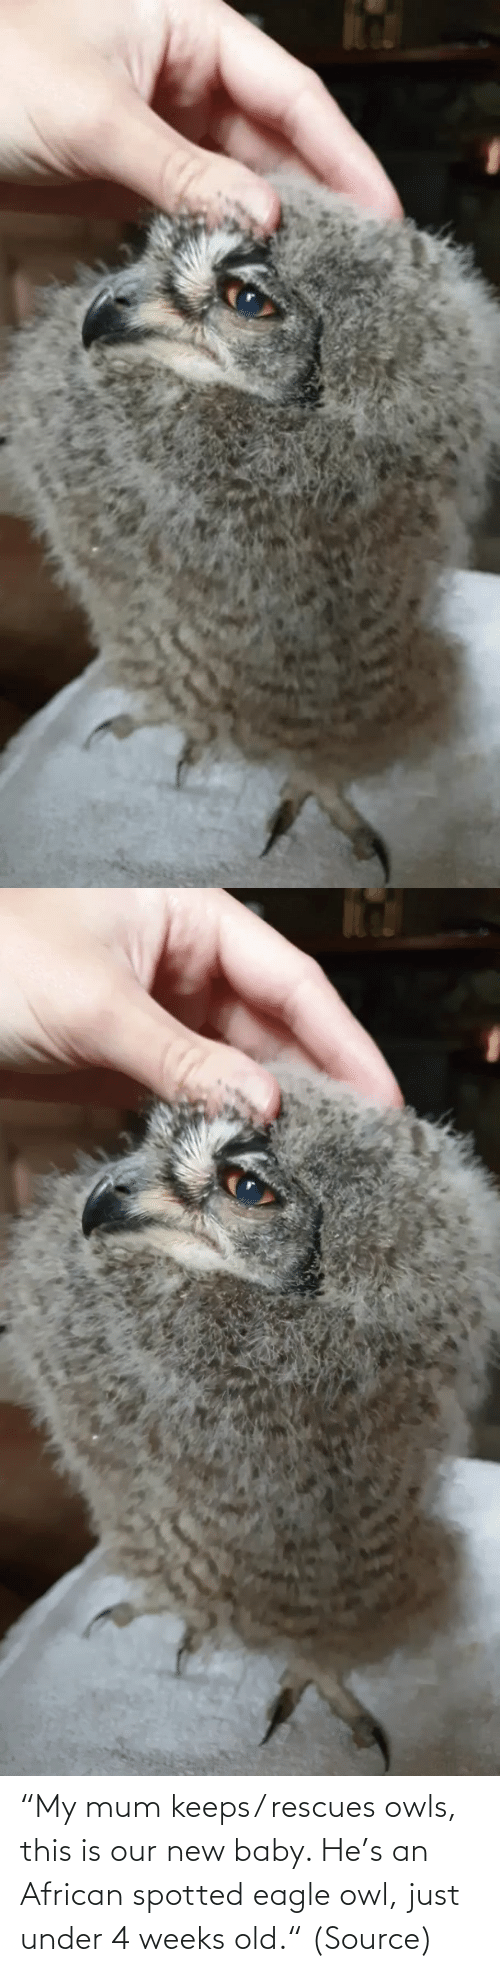 "aww: ""My mum keeps/ rescues owls, this is our new baby. He's an African spotted eagle owl, just under 4 weeks old."" (Source)"